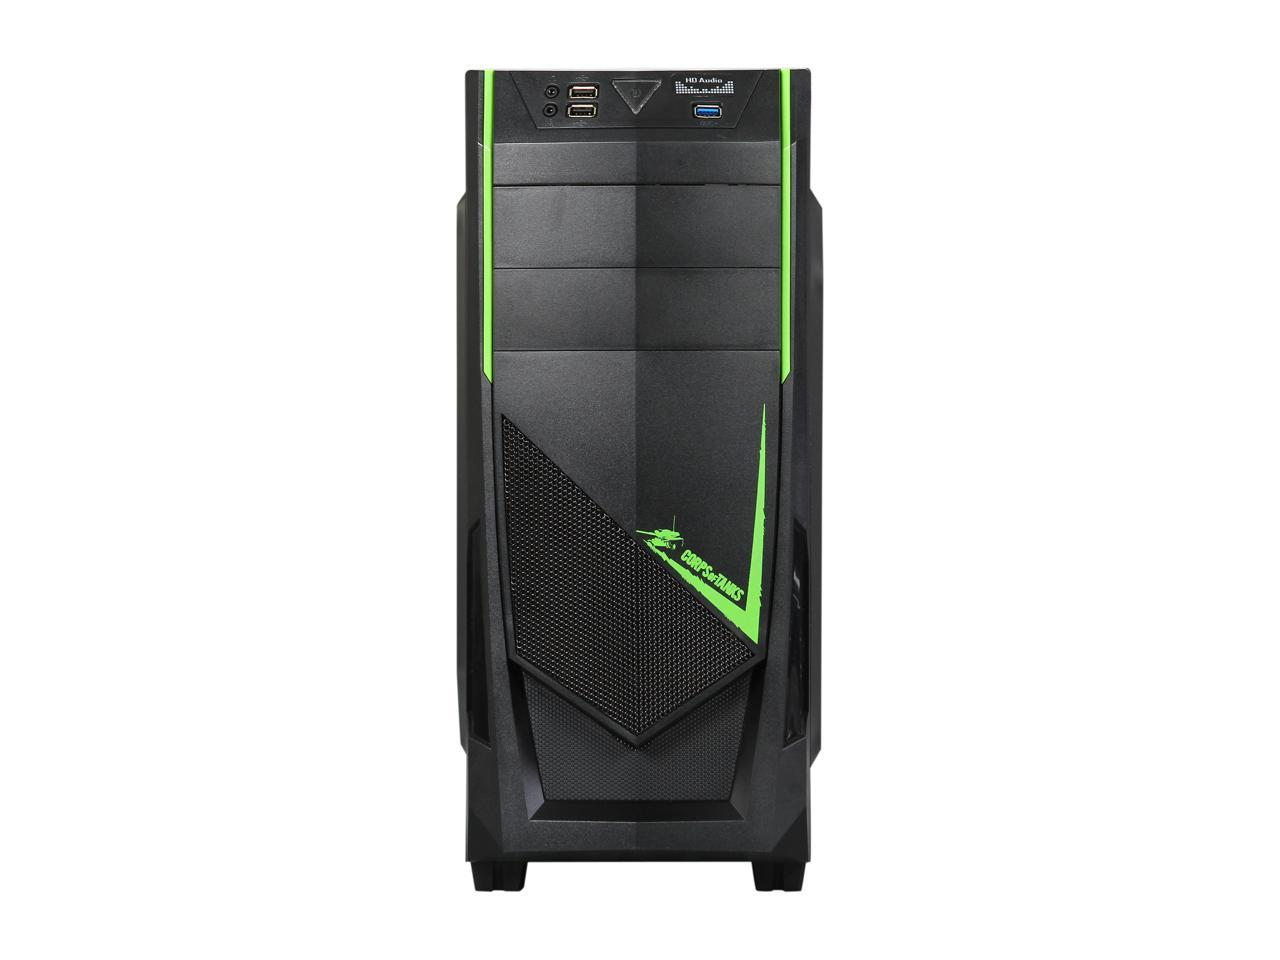 DIYPC Ranger-R8-G Black//Green USB 3.0 ATX Mid Tower Gaming Computer Case with 3